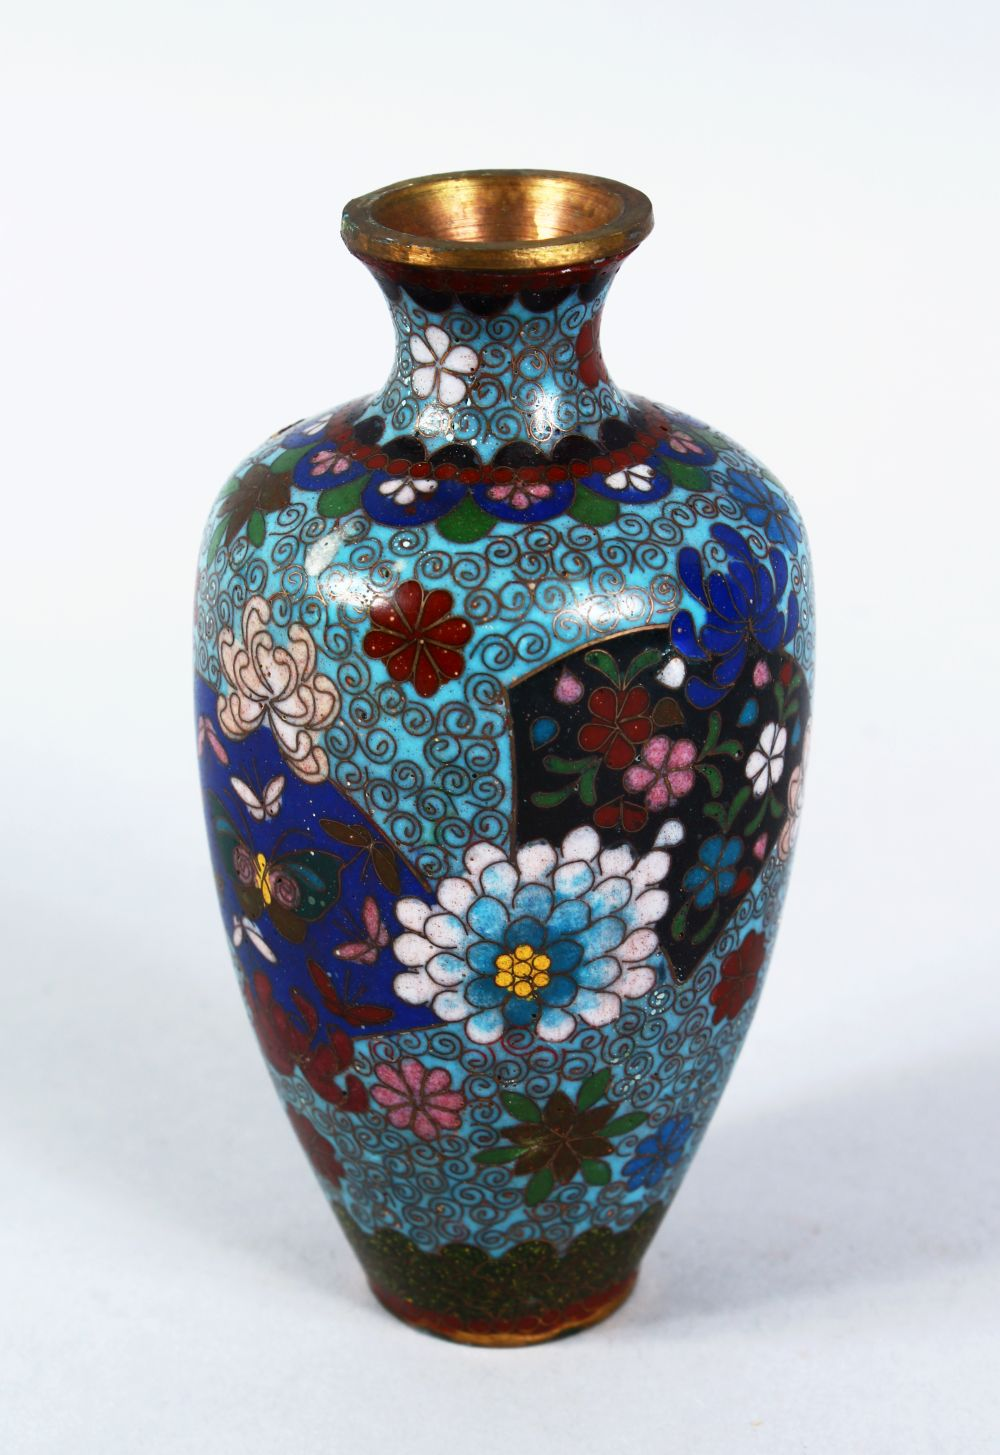 A SMALL JAPANESE MEIJI PERIOD CLOISONNE VASE, the vase with a turquoise ground with decoration